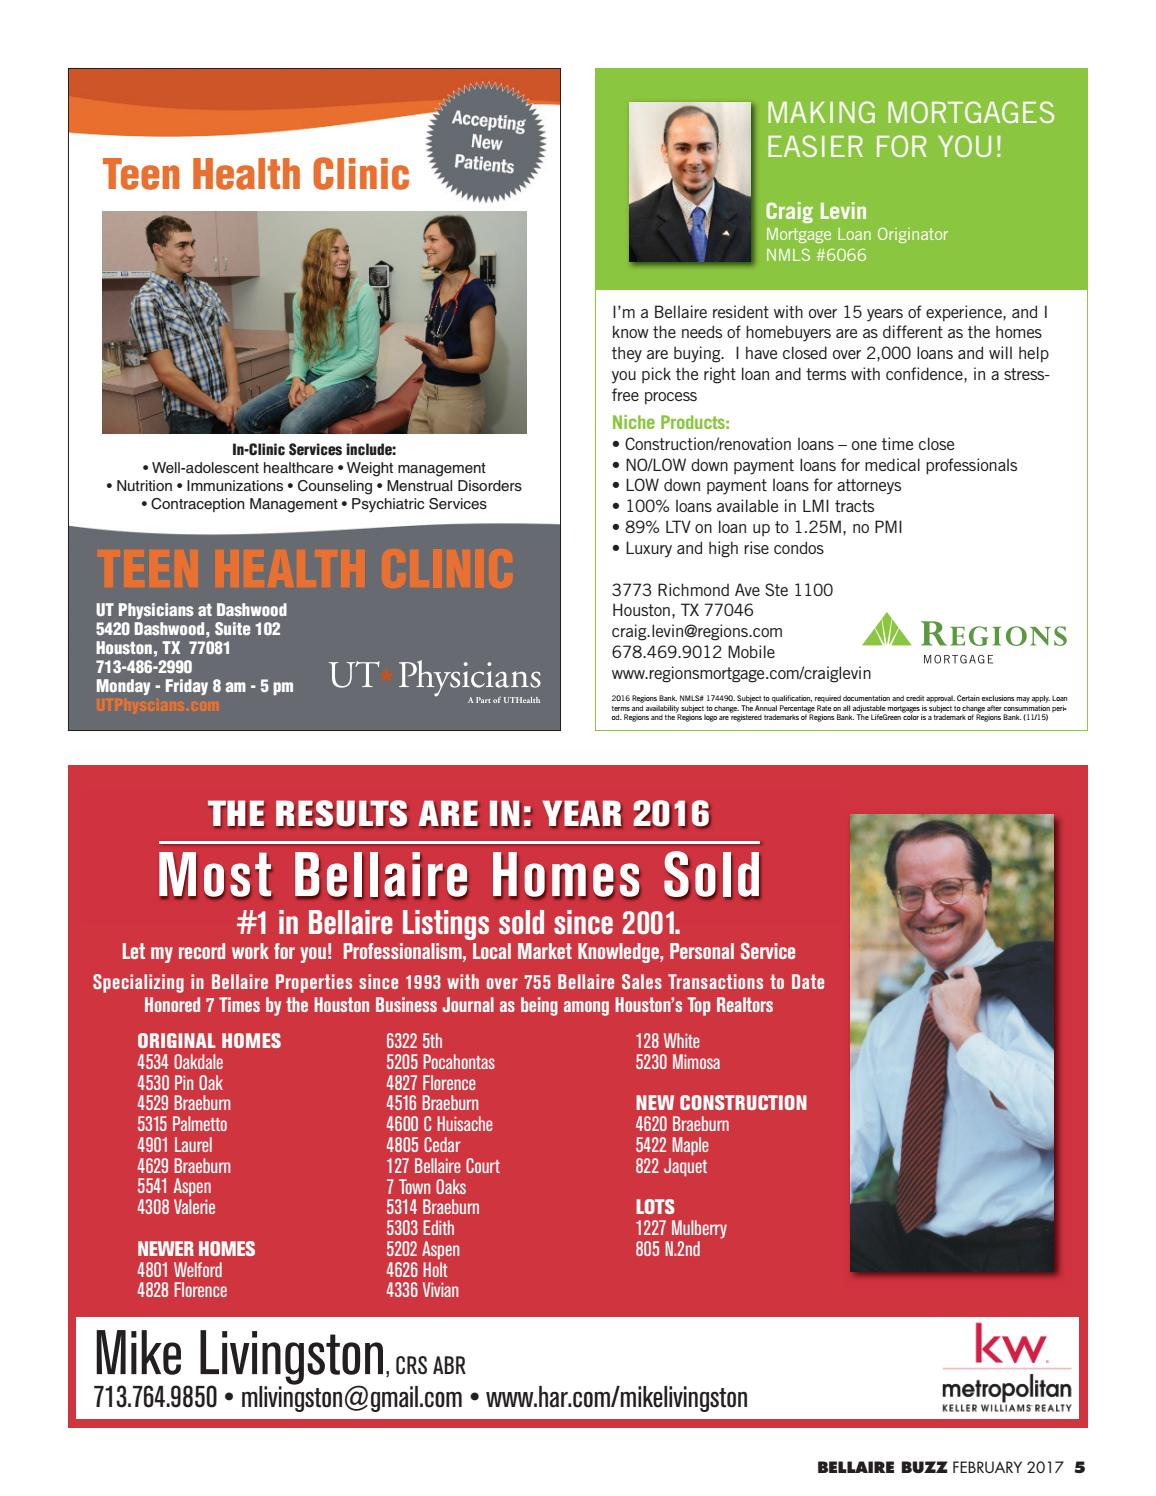 The Bellaire Buzz - February 2017 by The Buzz Magazines - issuu